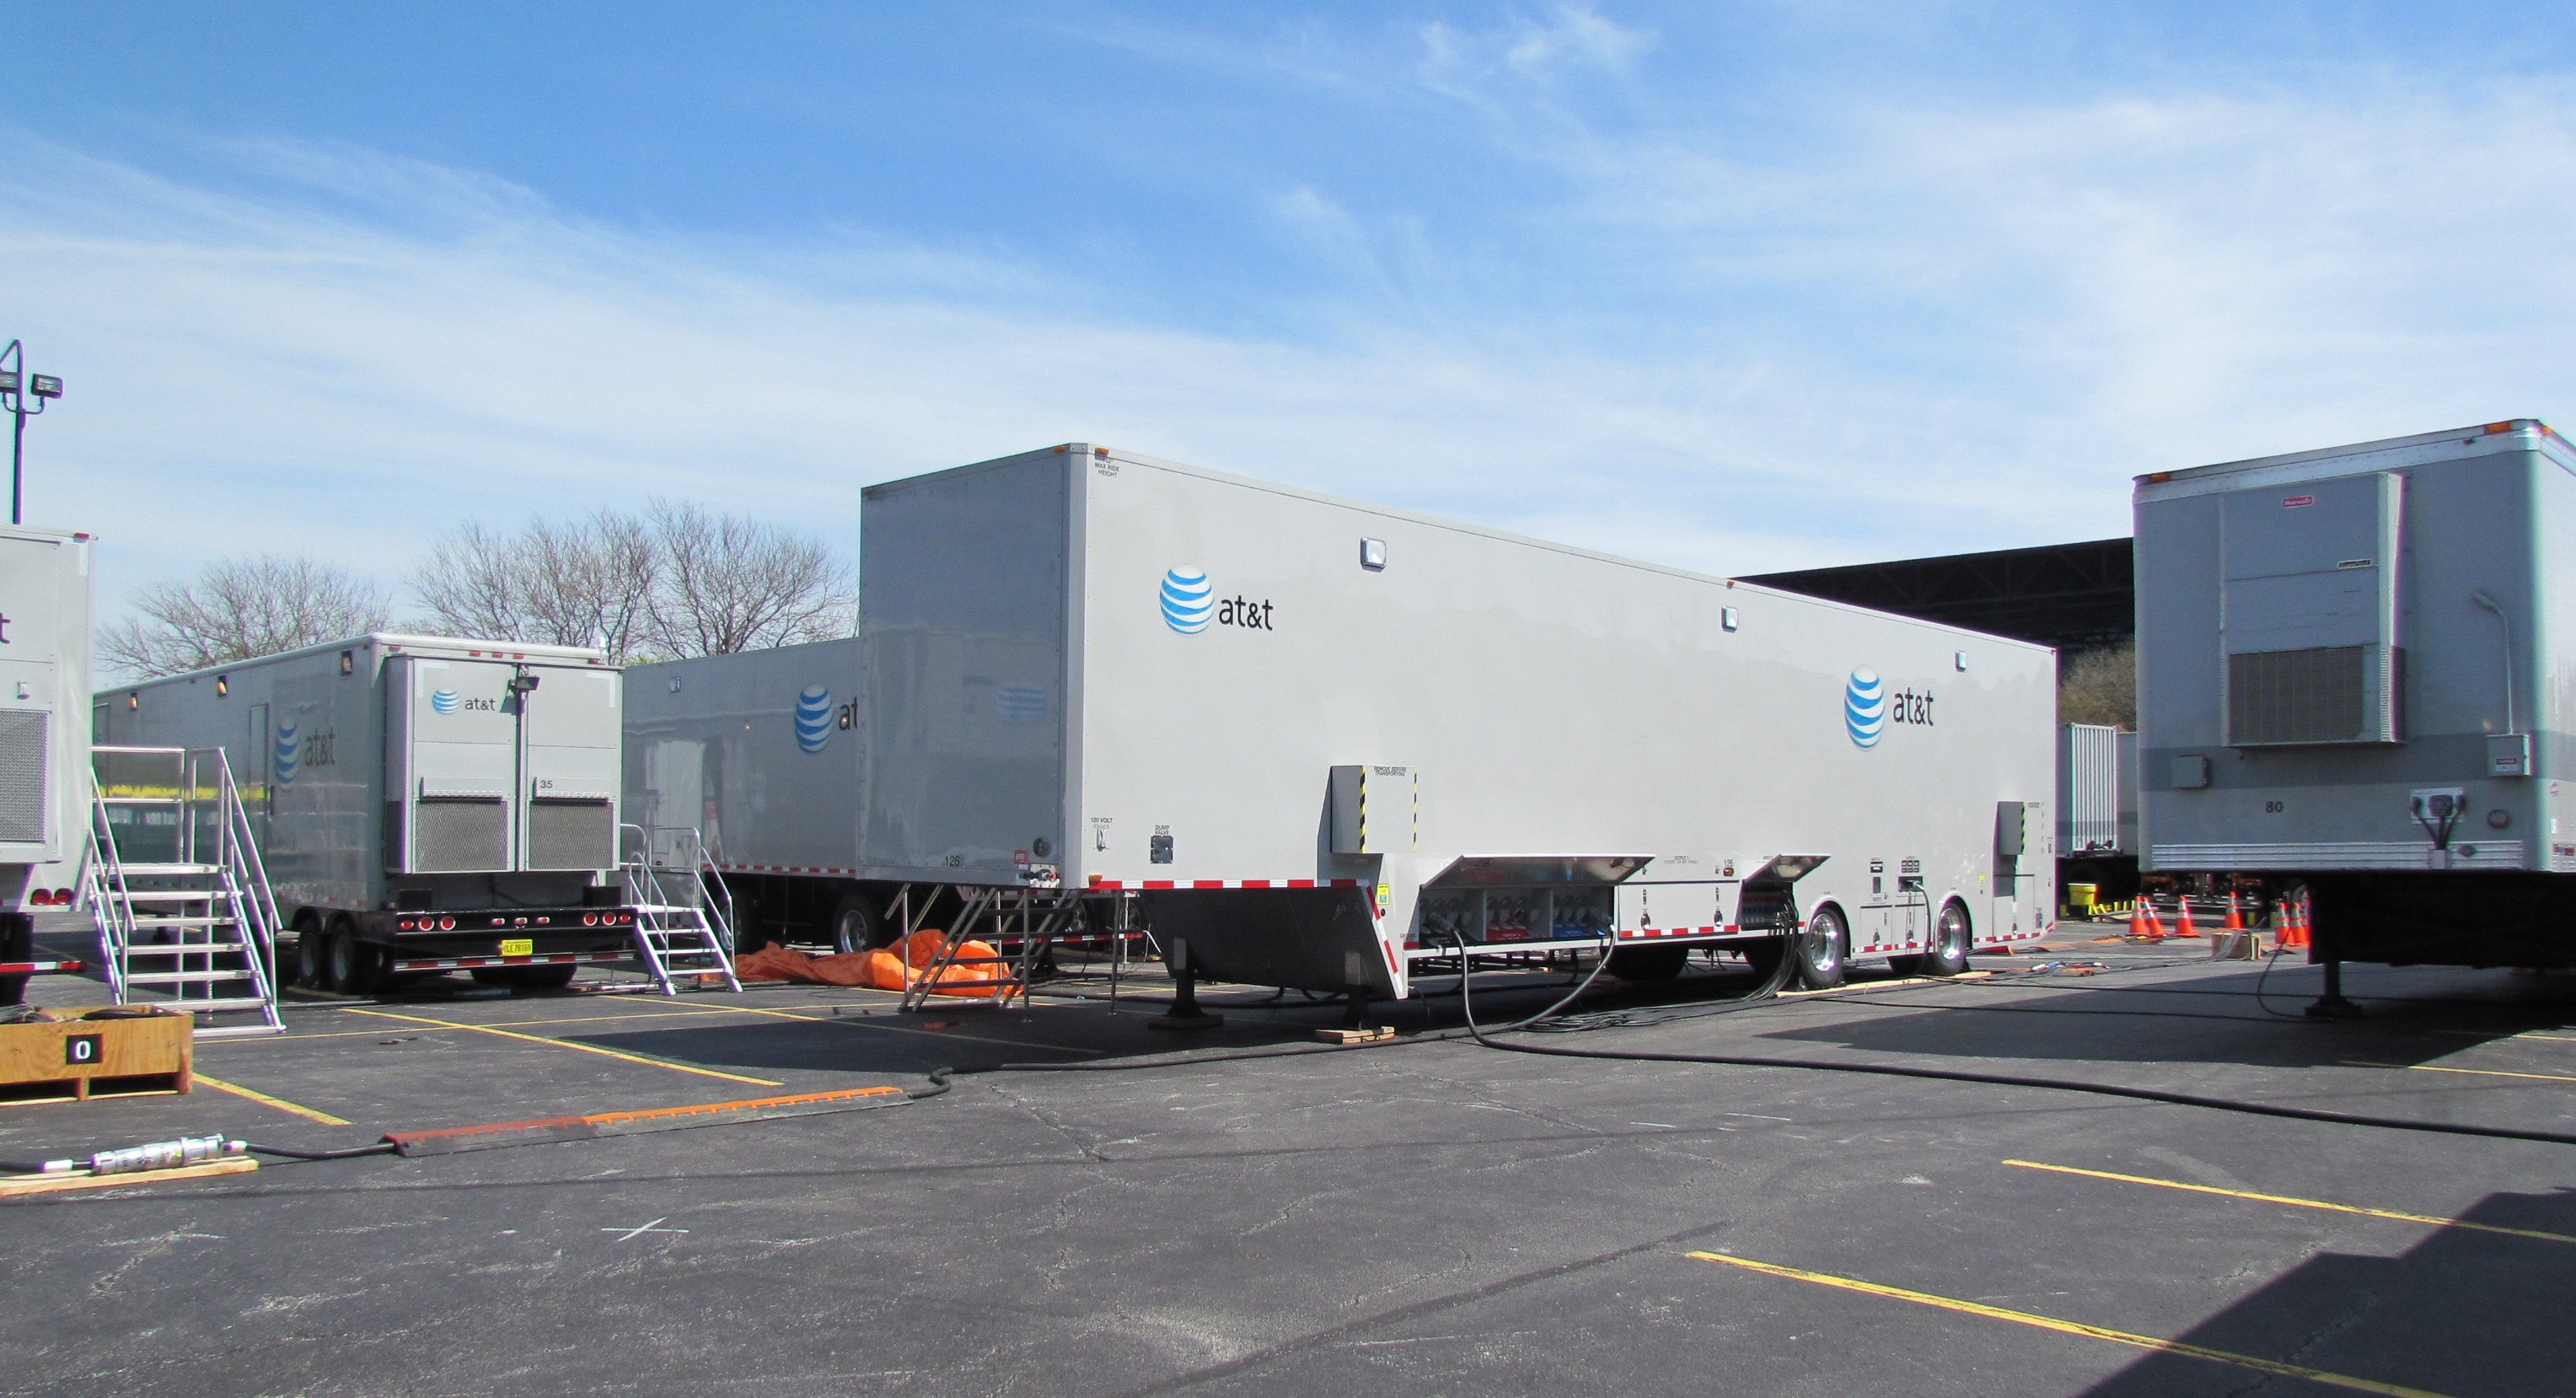 AT&T's disaster recovery trailers in Chicago's Soldier Field parking lot (Photo: Kevin Fitchard)